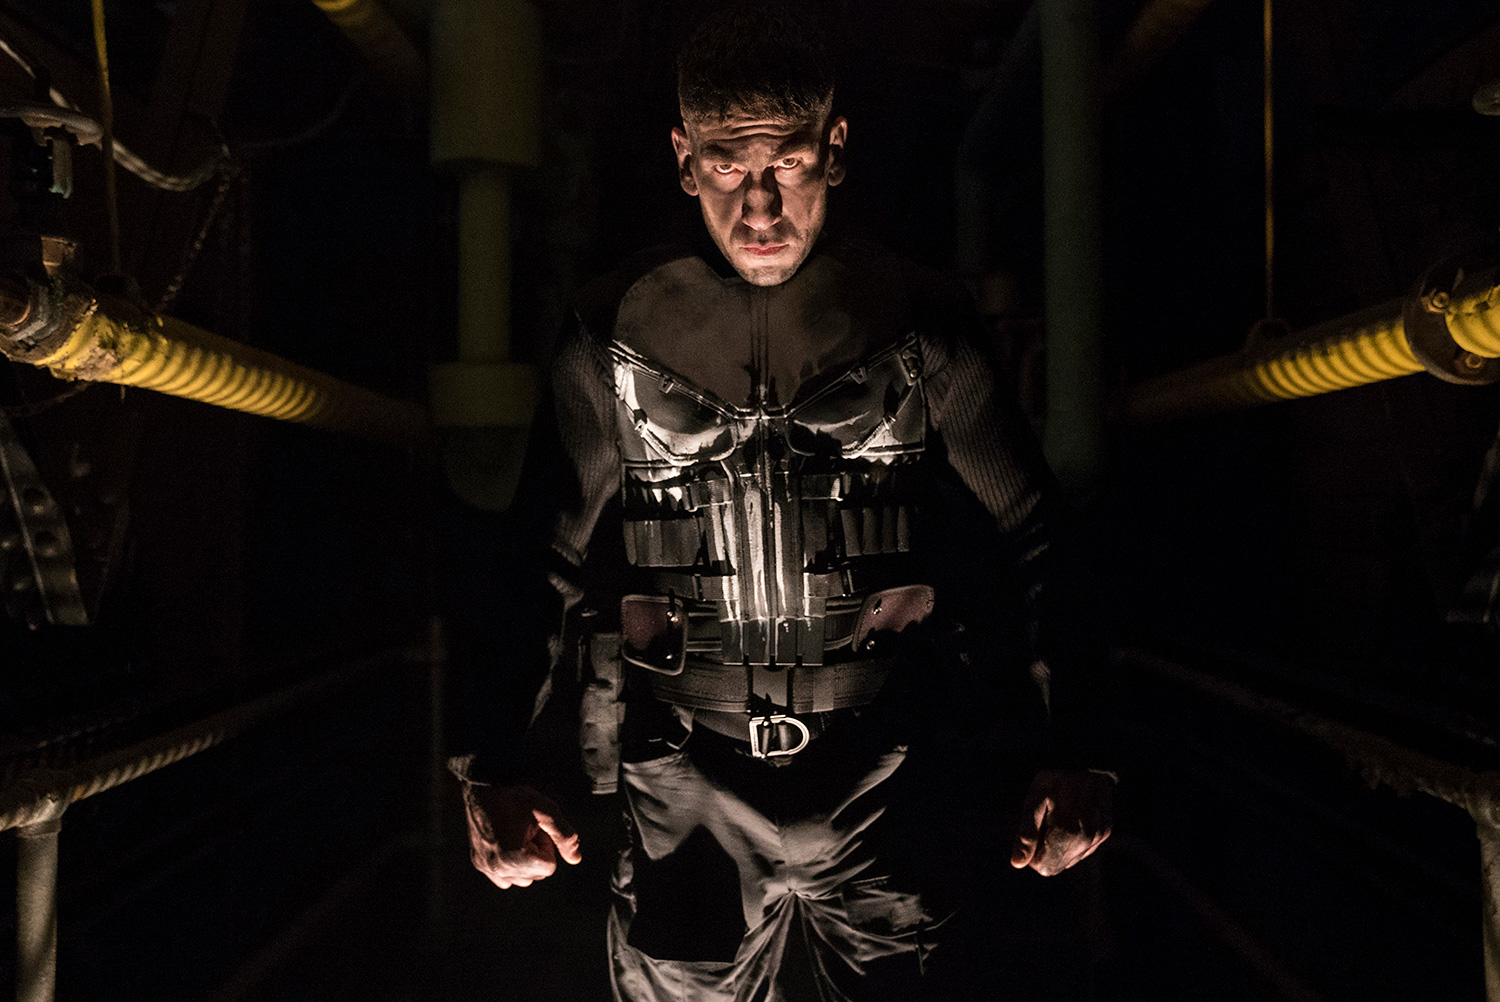 Marvel's 'The Punisher' Teaser Trailer 'Demolition' Released